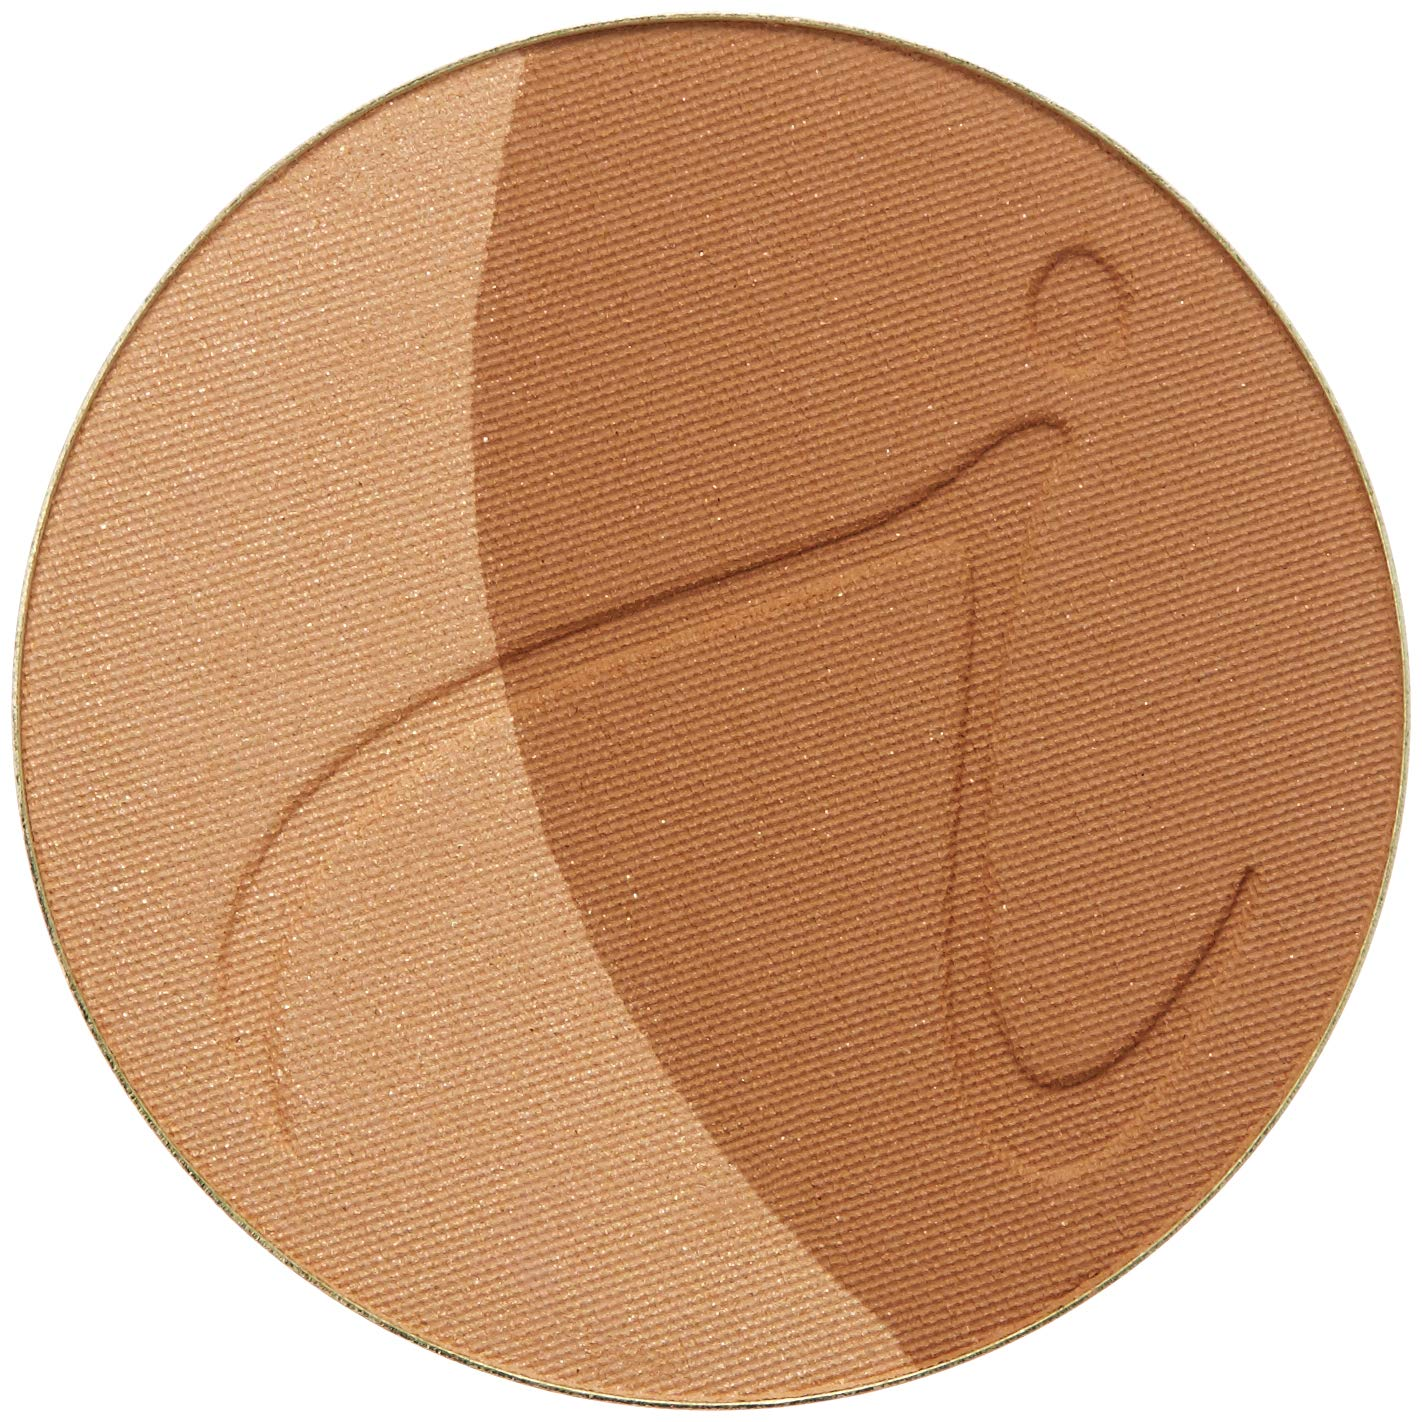 jane iredale So-Bronze Bronzing Powder Refill by jane iredale